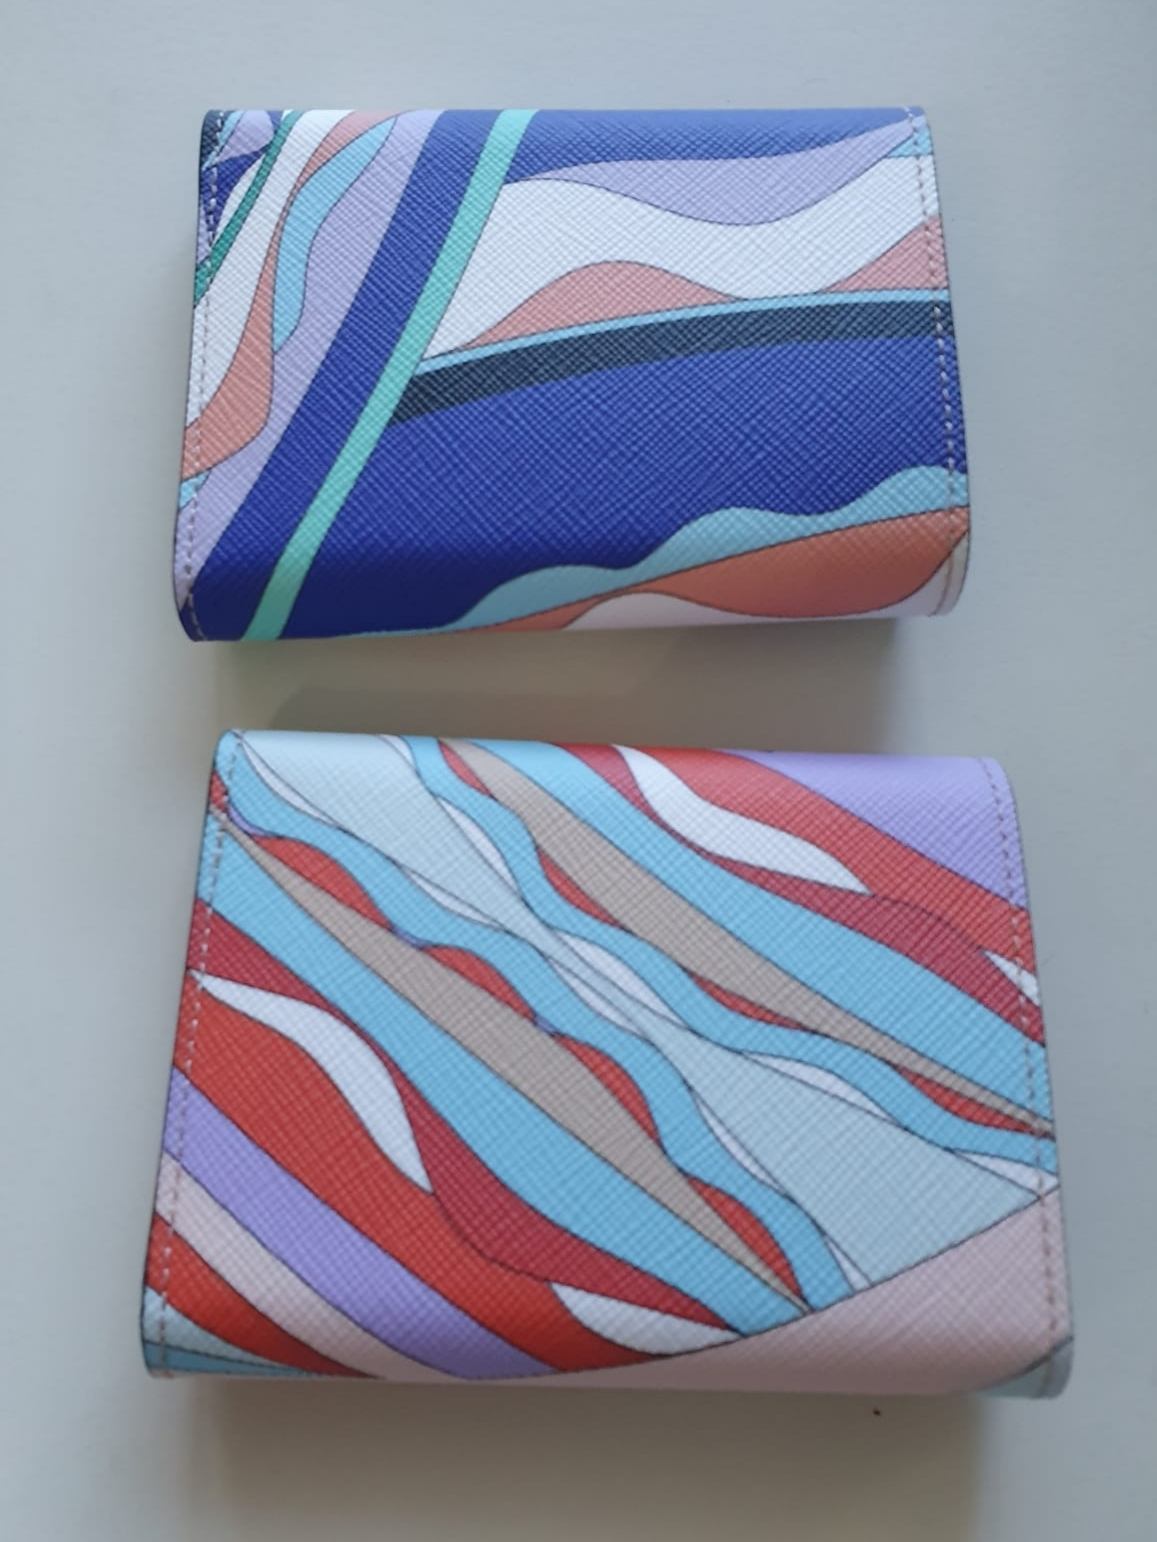 shop emilio pucci accessories